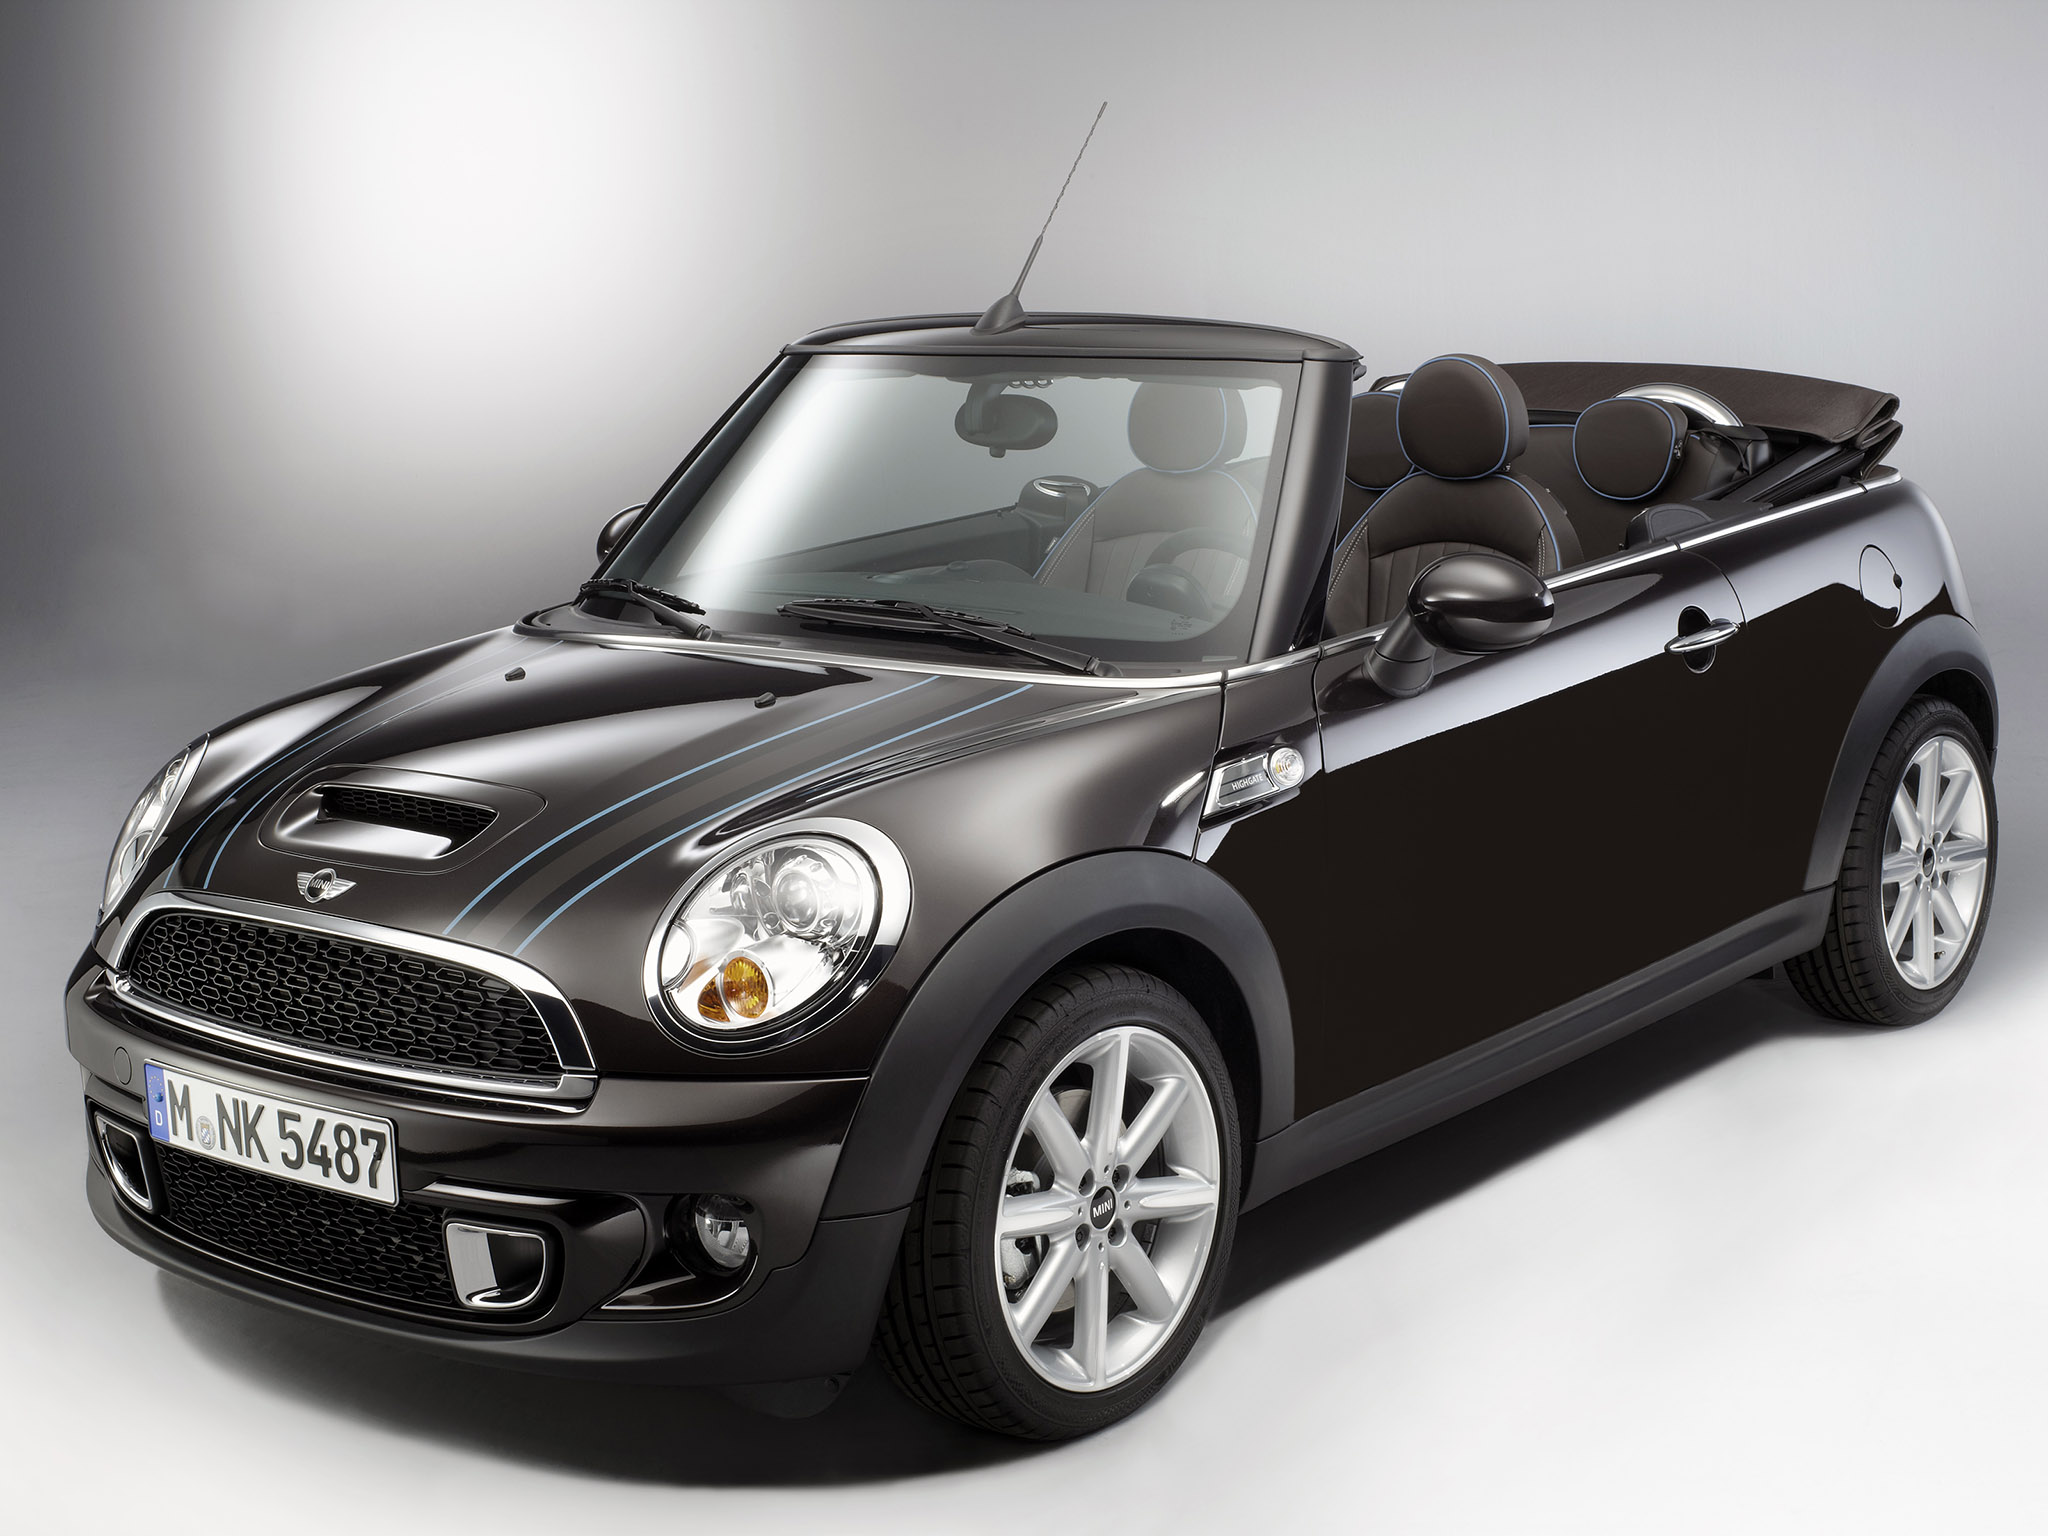 cabrio cooper mini cooper cabrio toupeenseen. Black Bedroom Furniture Sets. Home Design Ideas